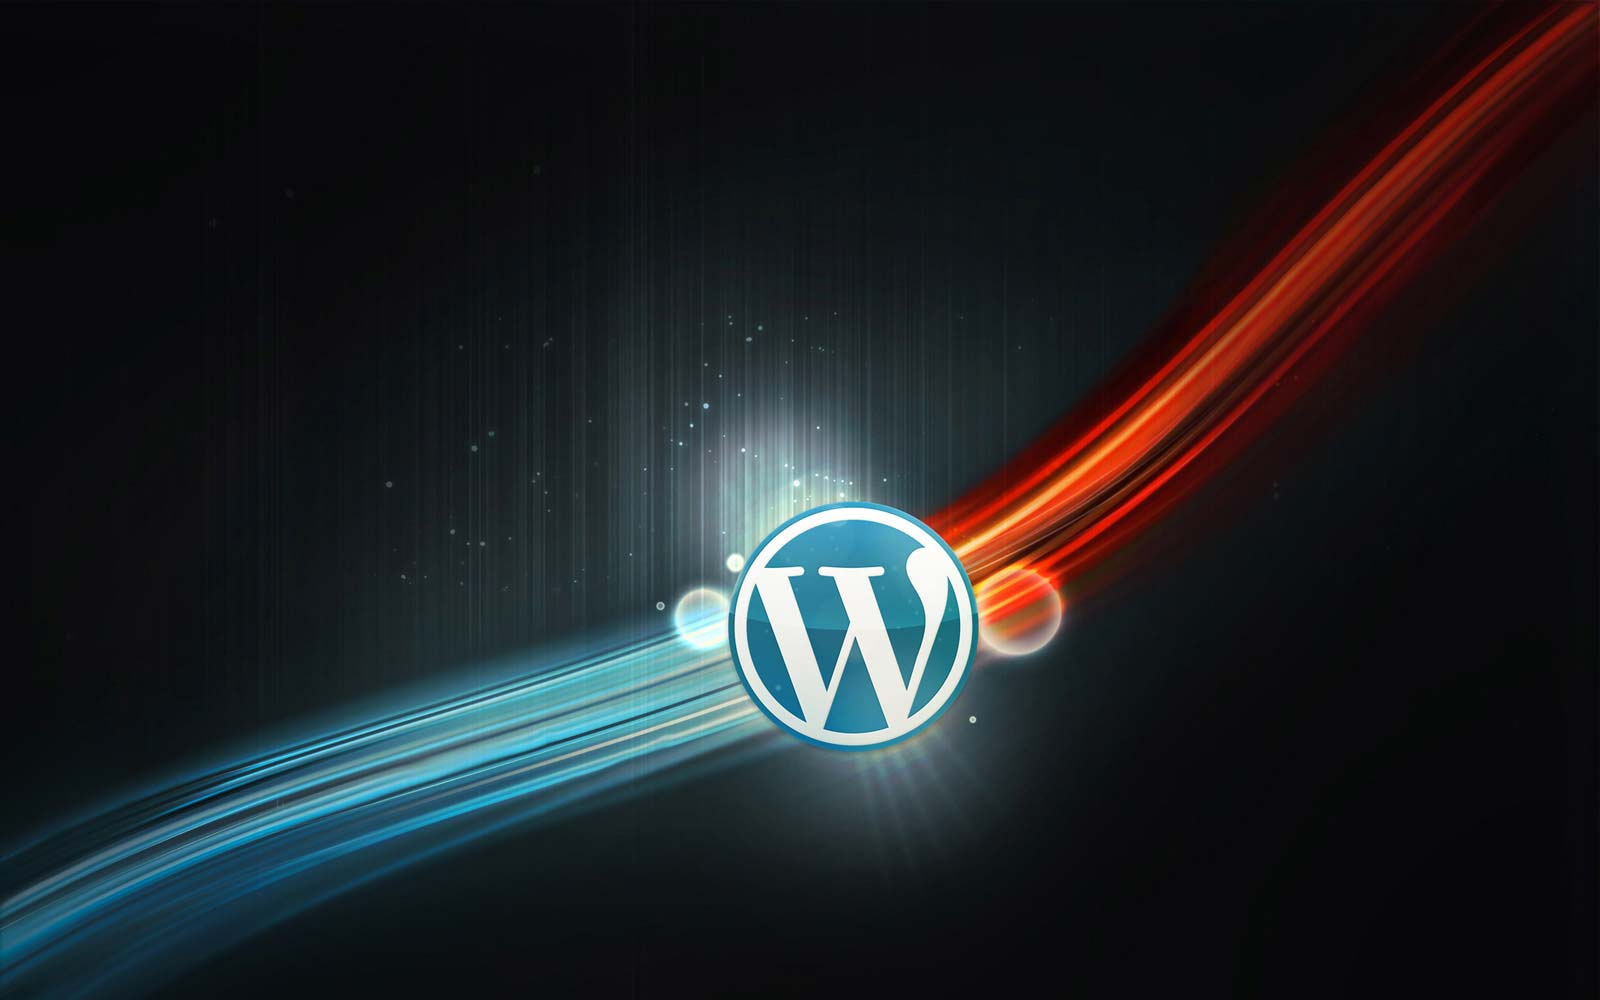 wordpres website design services in hyderabad,wordpress development company hyderabad